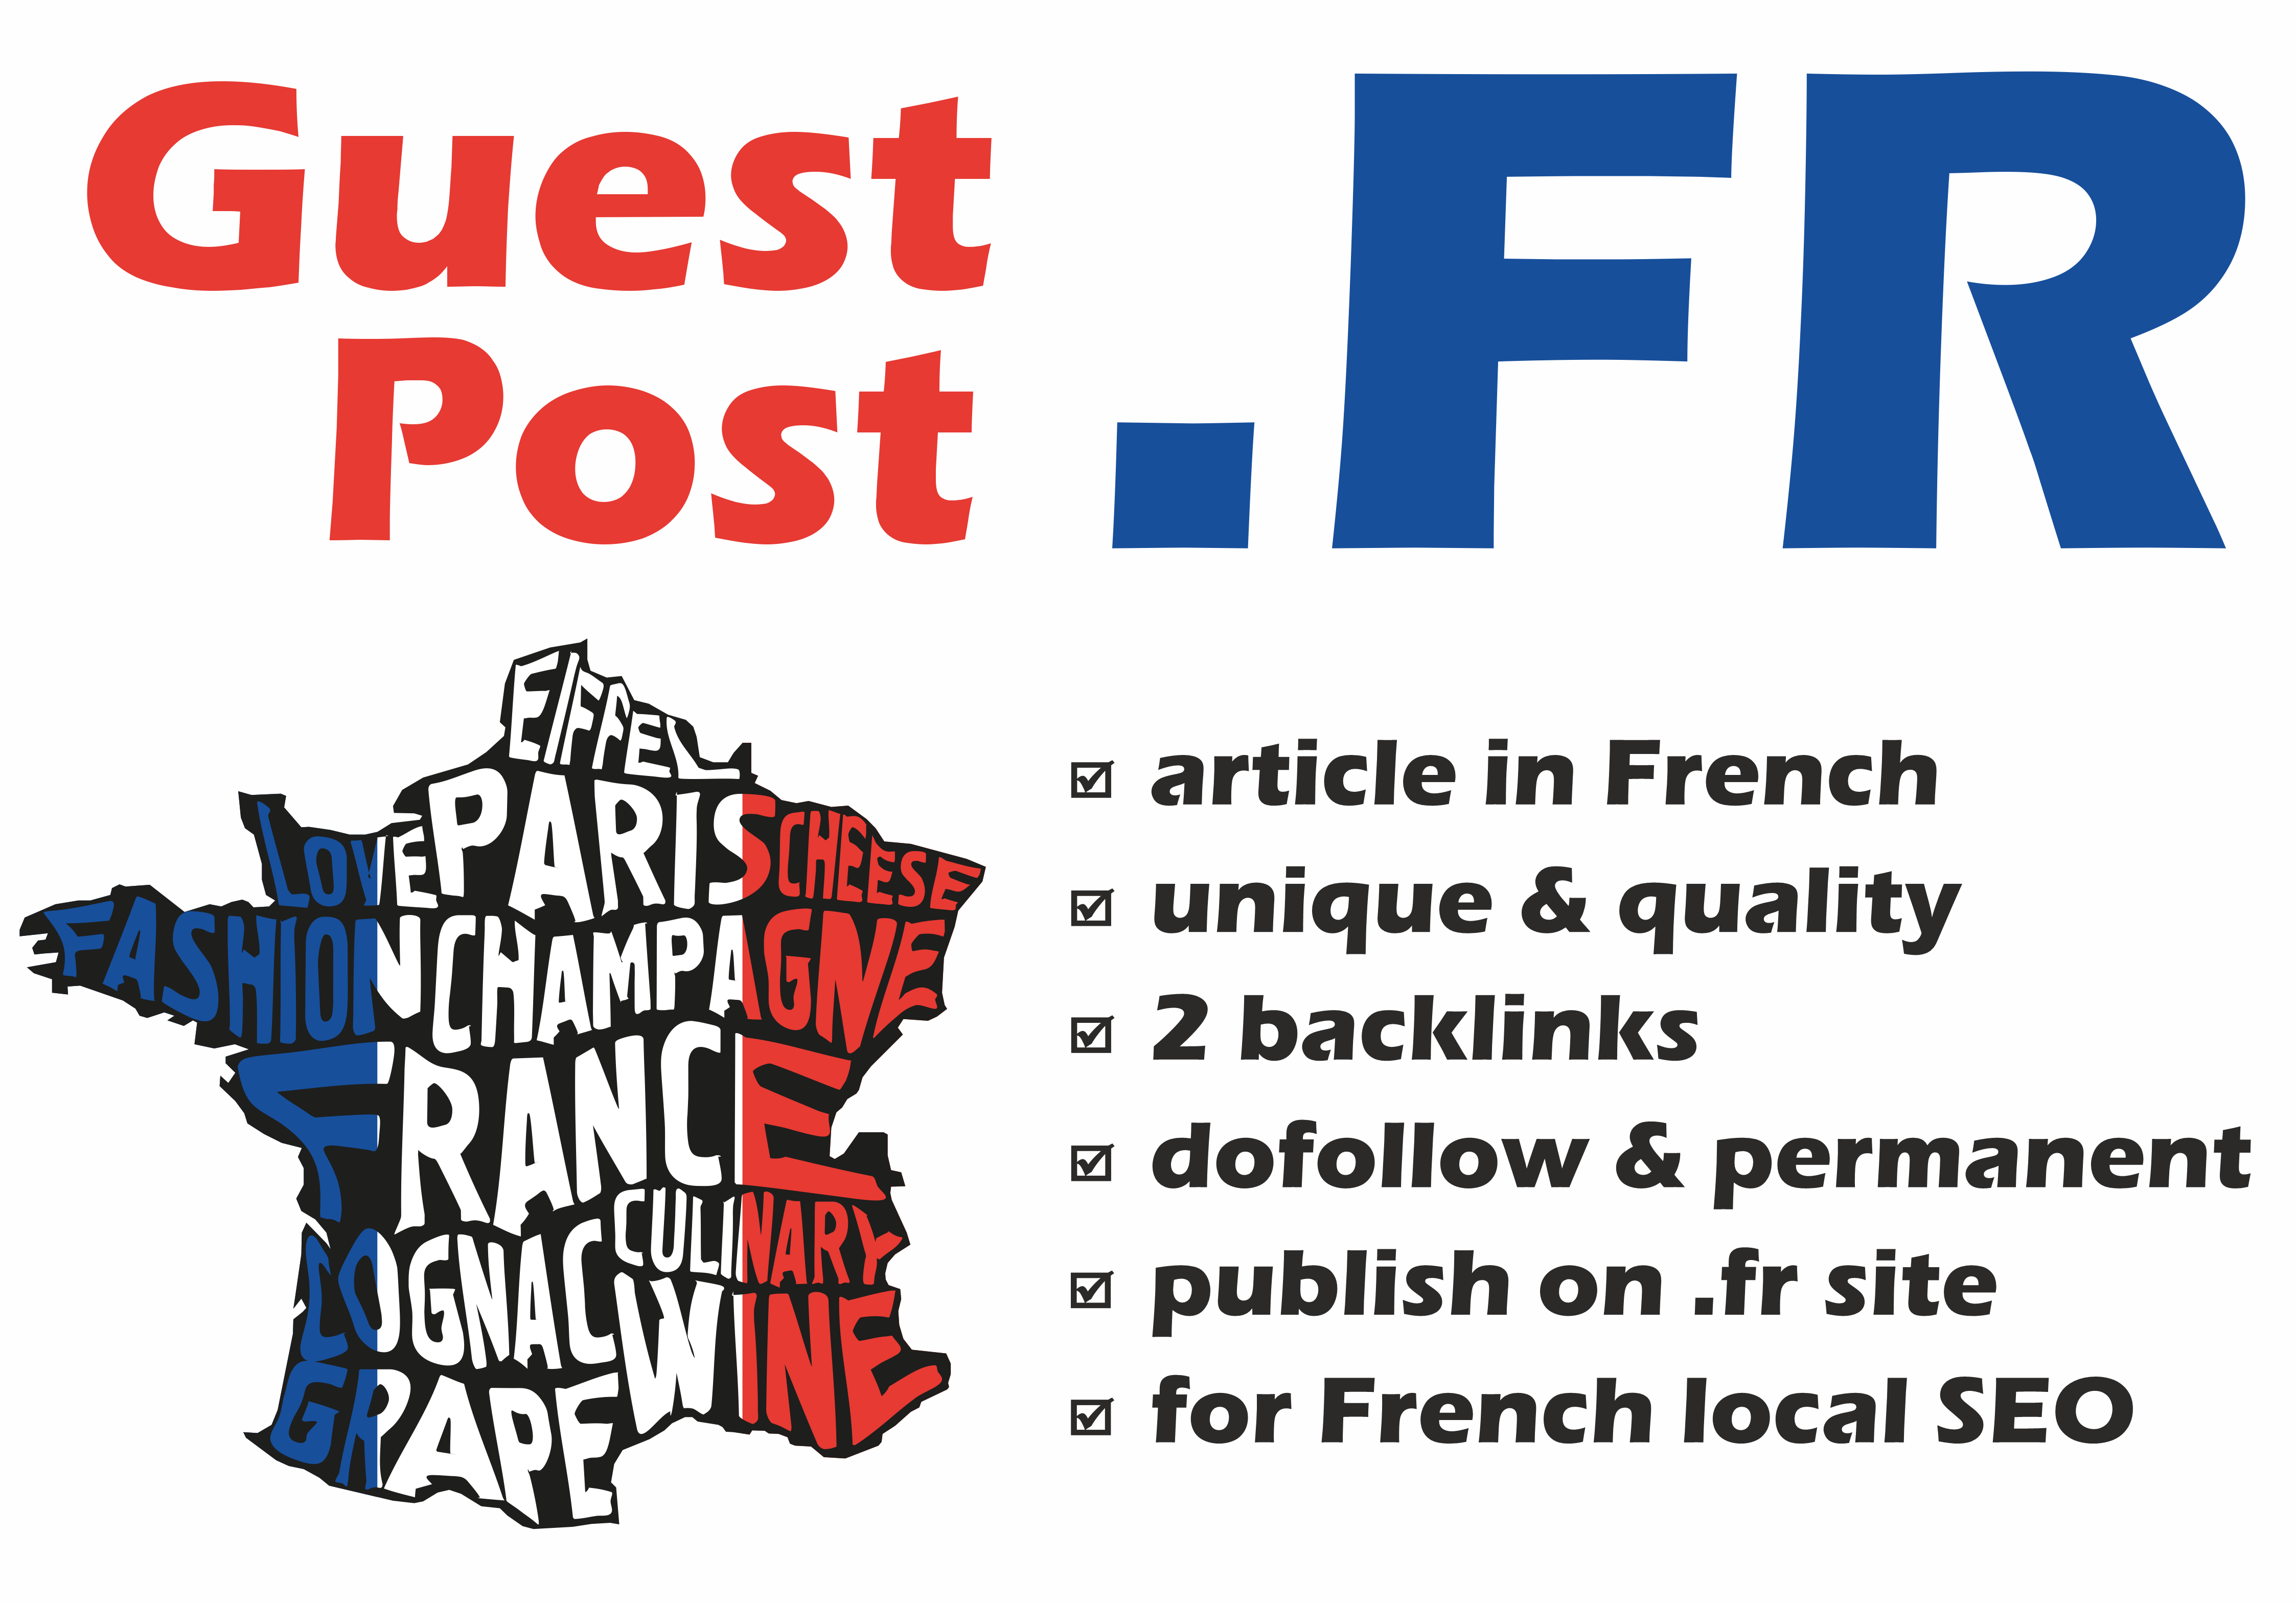 French Gust Post on. FR website for local SEO in France